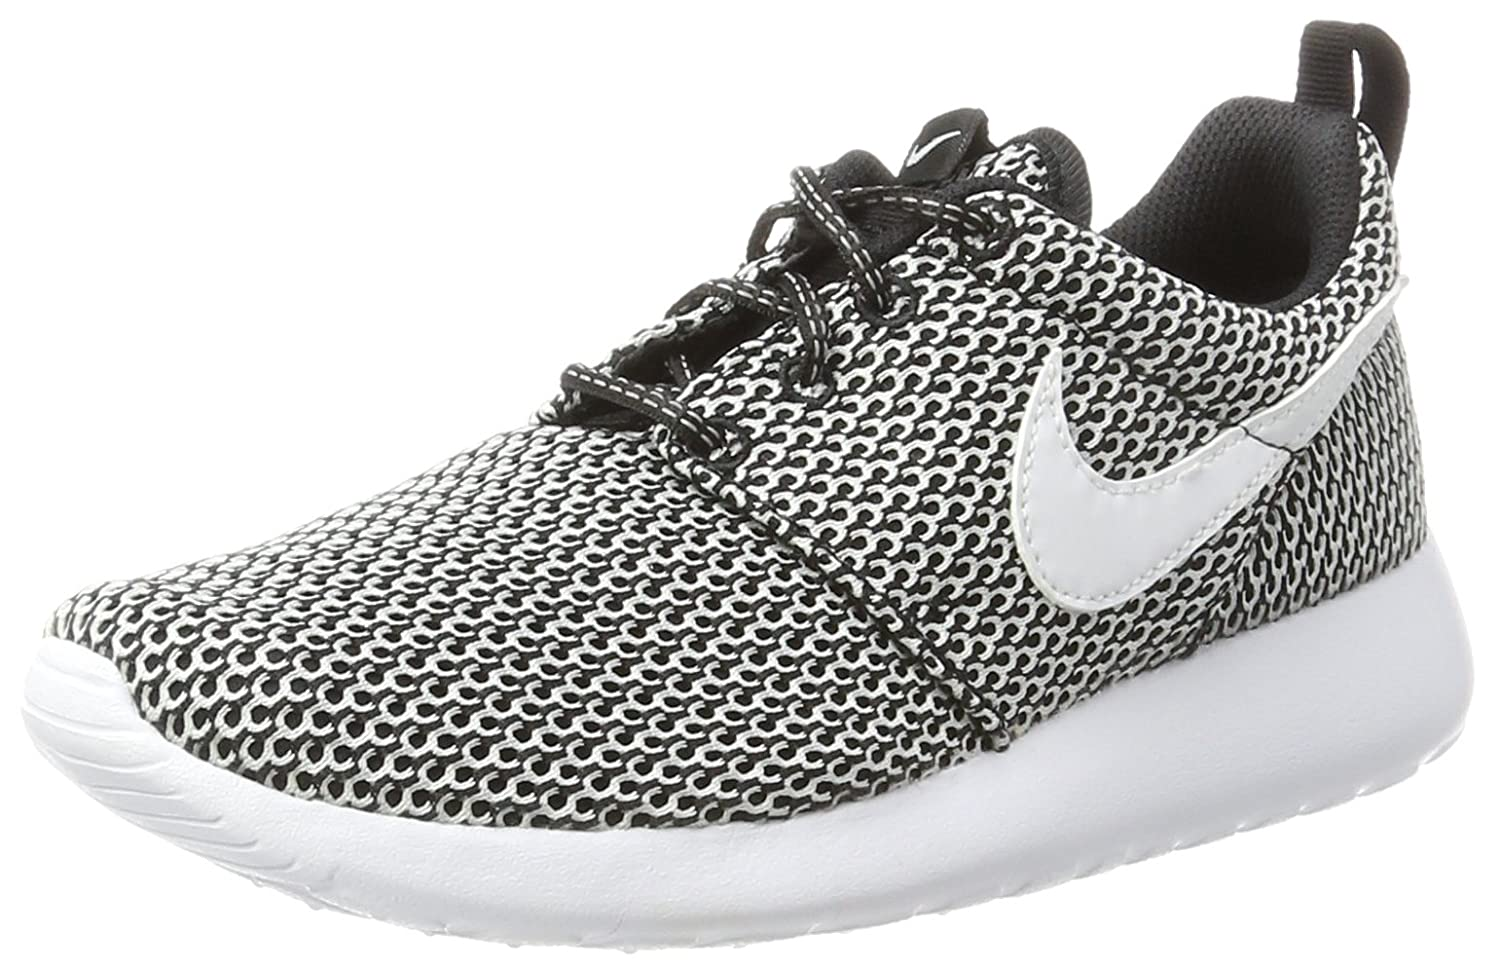 finest selection 3bb3f 73f51 Amazon.com   Nike Roshe One Big Kids   Sneakers